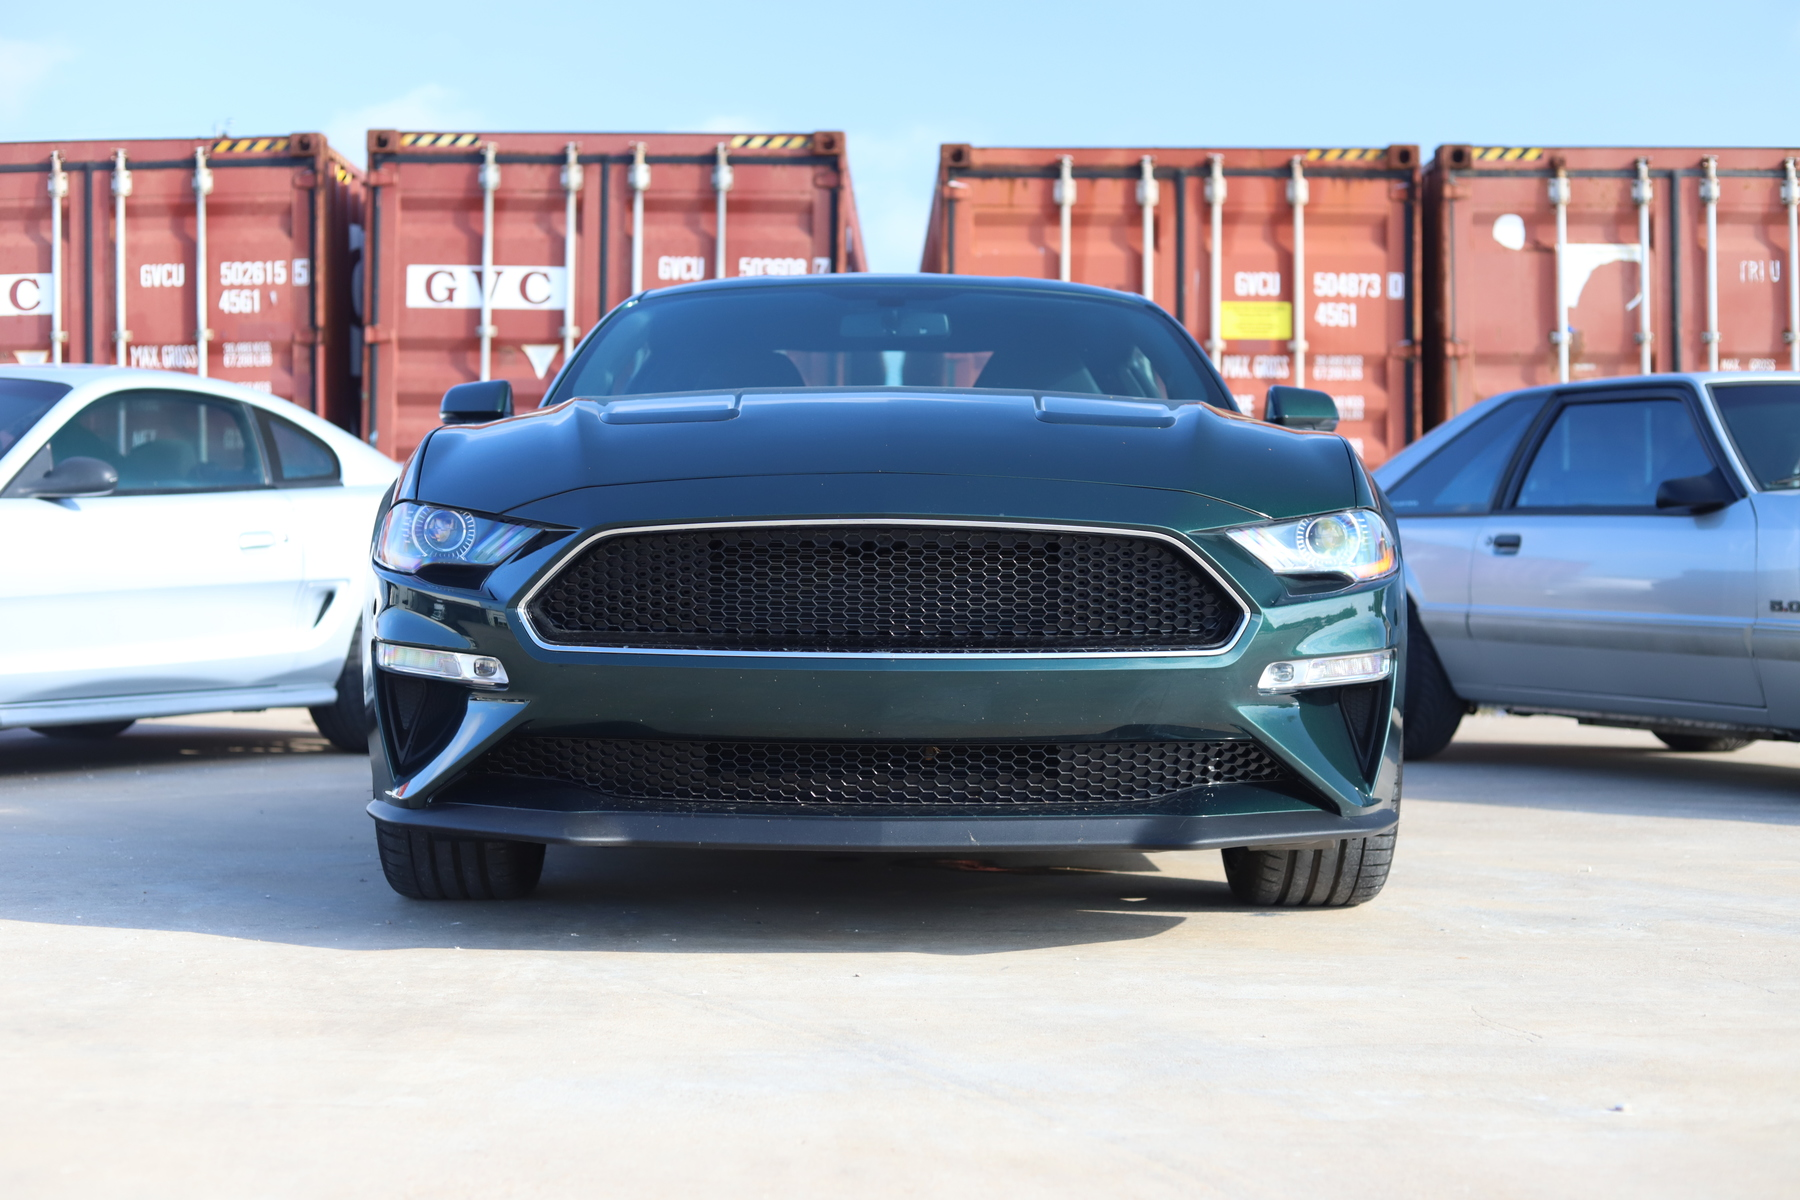 Everything You Need To Know About The Mustang Bullitt - Everything You Need To Know About The Mustang Bullitt